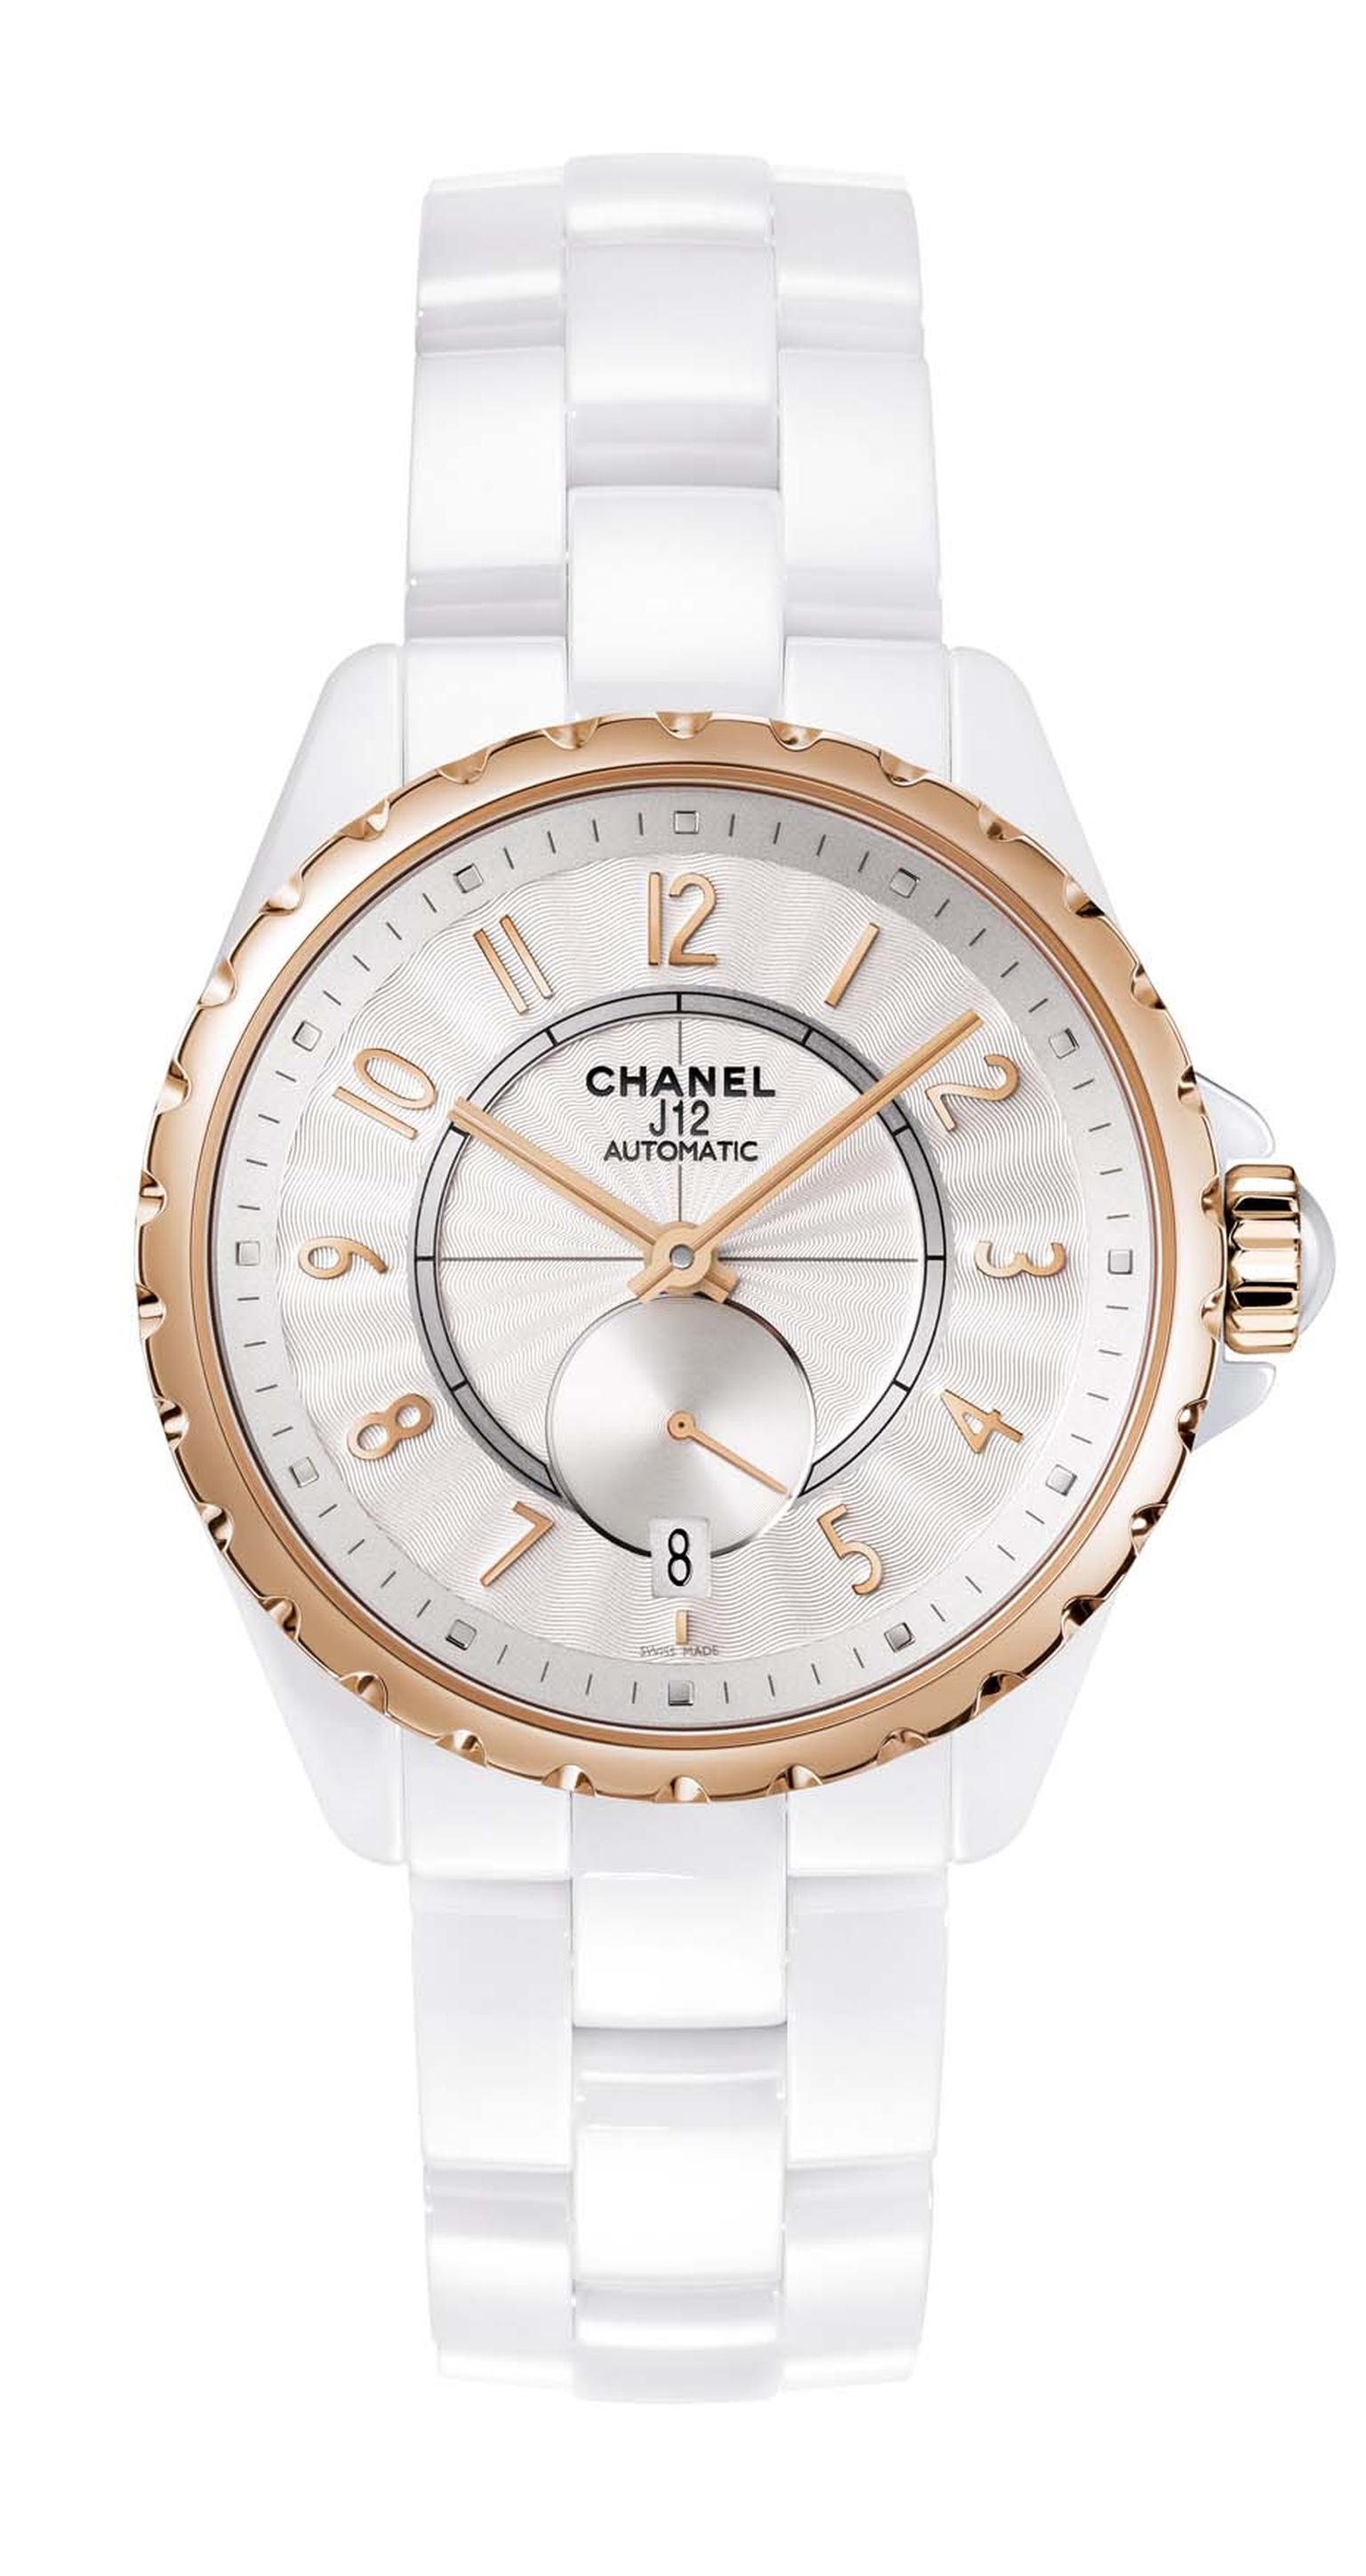 Chanel J12-365 white high-tech ceramic watch featuring beige gold, an alloy exclusive to Chanel, as well as a Guilloche´-finished opaline dial.